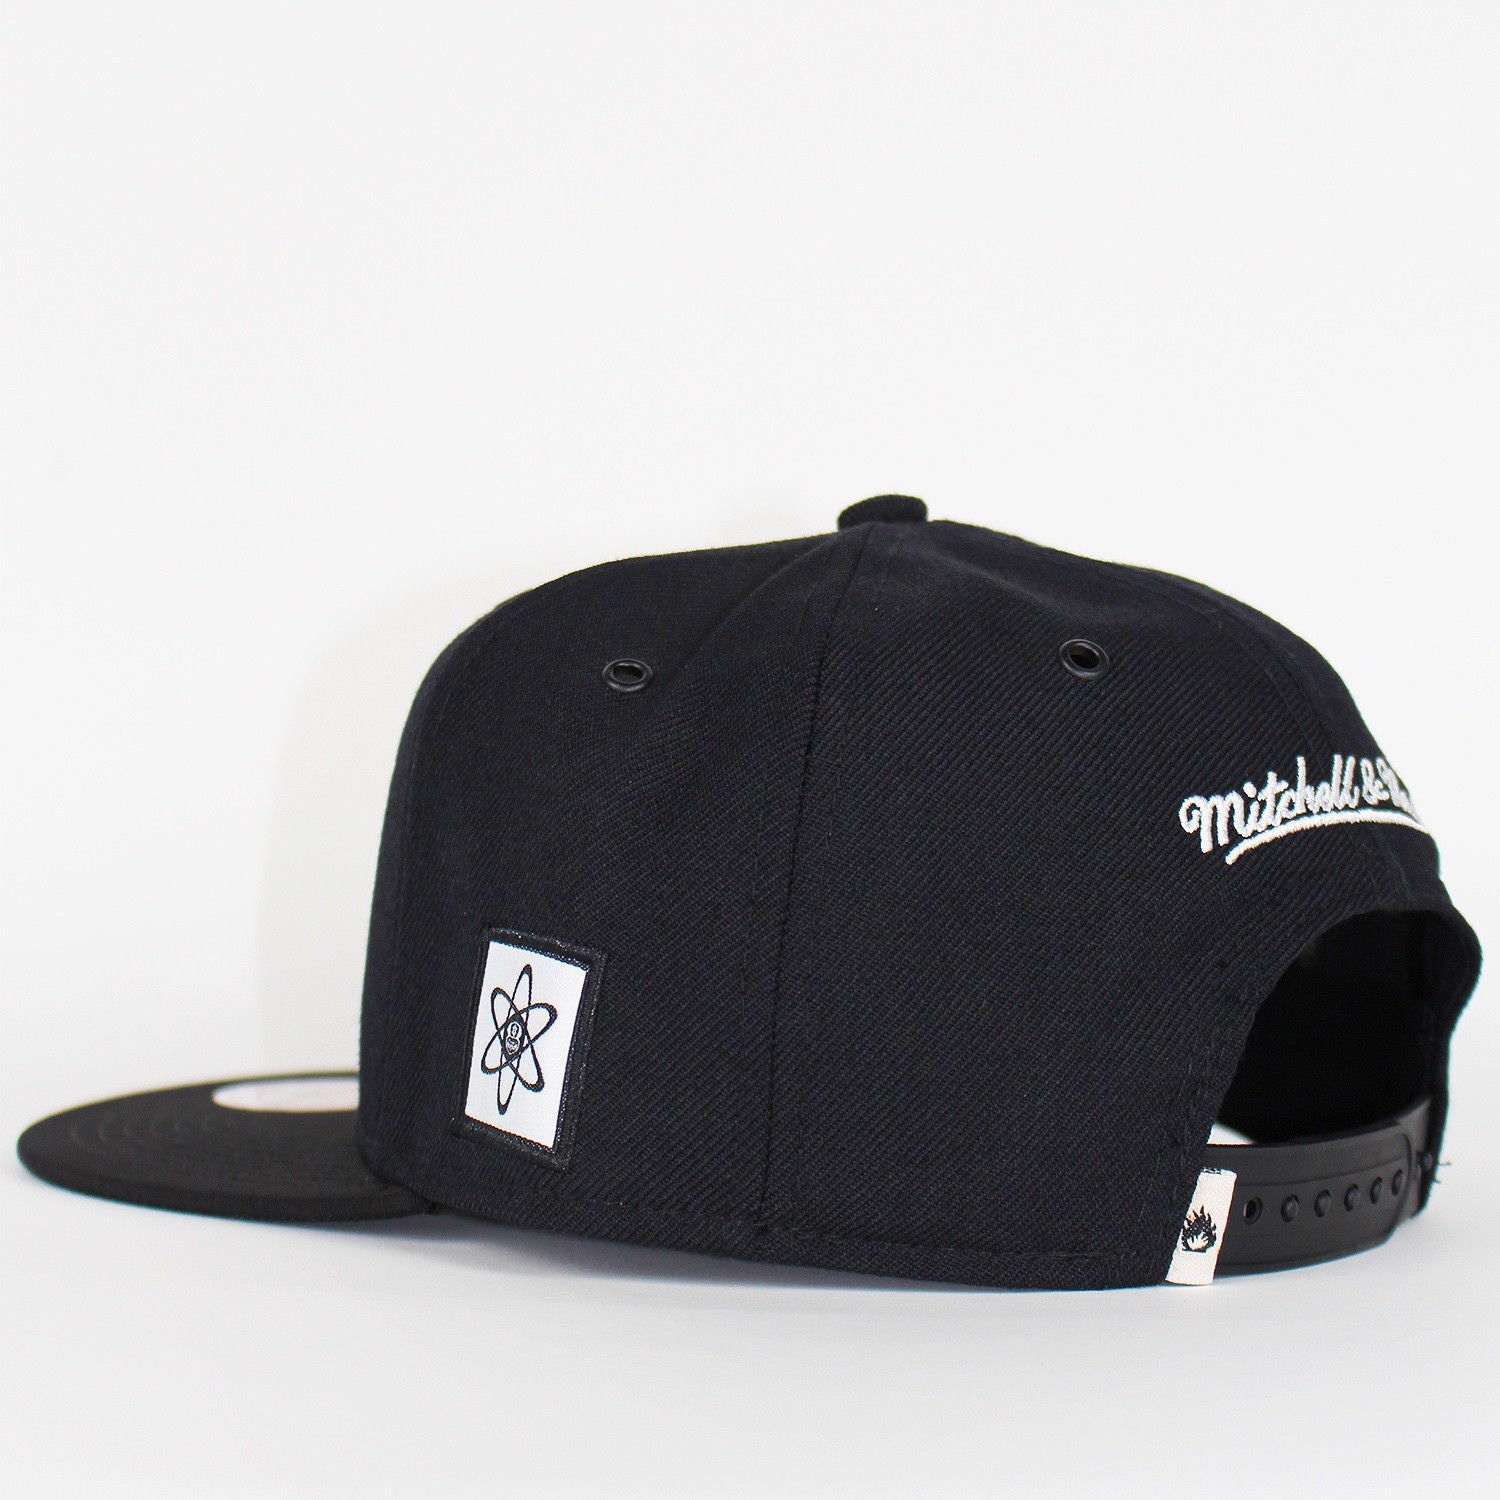 Mitchell /& Ness x Capology Atom Black Snapback Limited Edition Baseball Cap